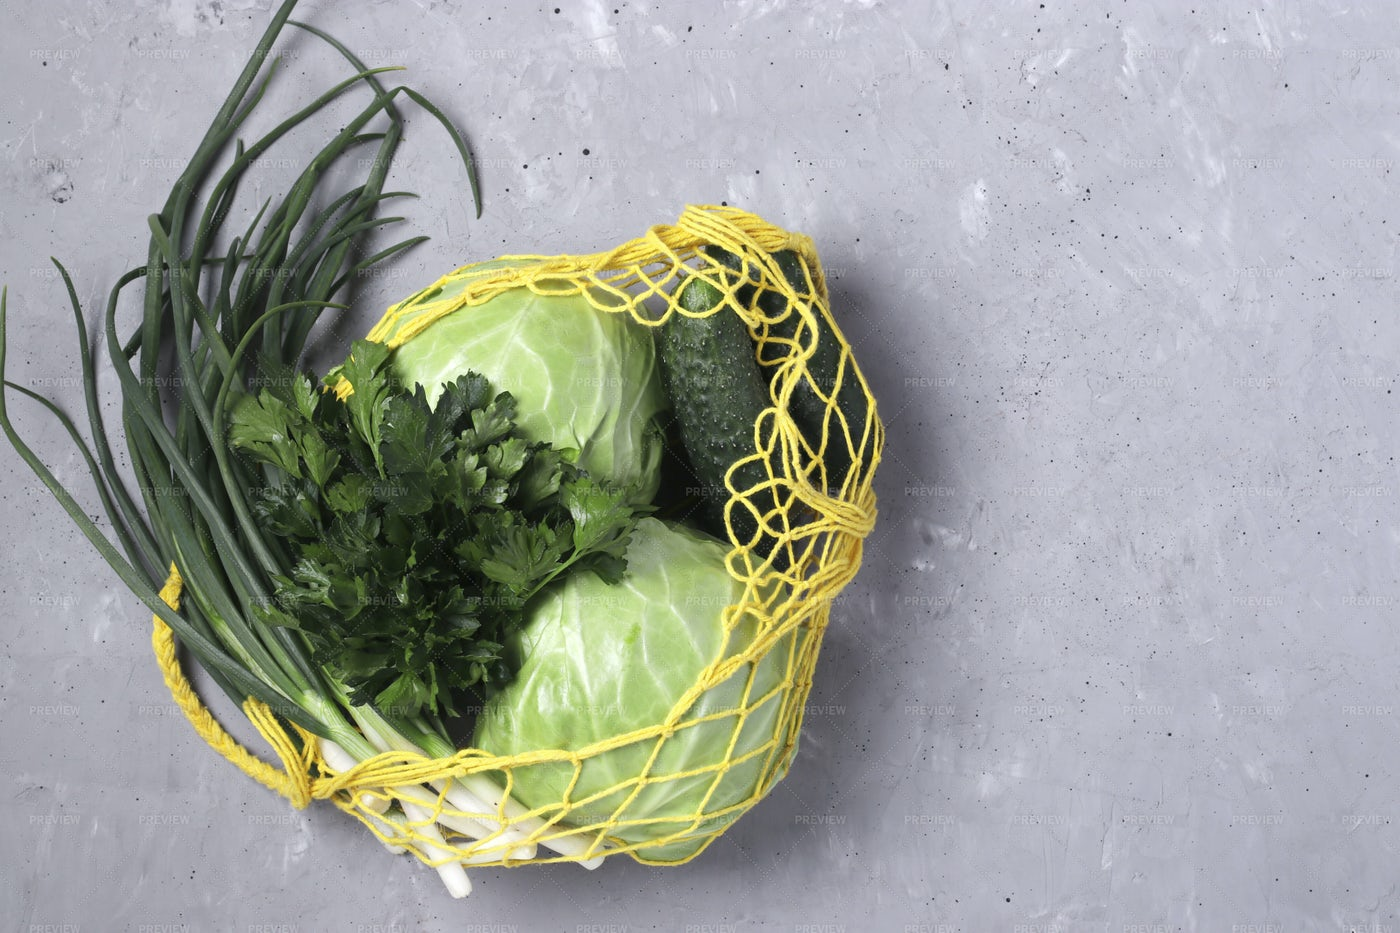 Mesh Bag Of Green Vegetables: Stock Photos